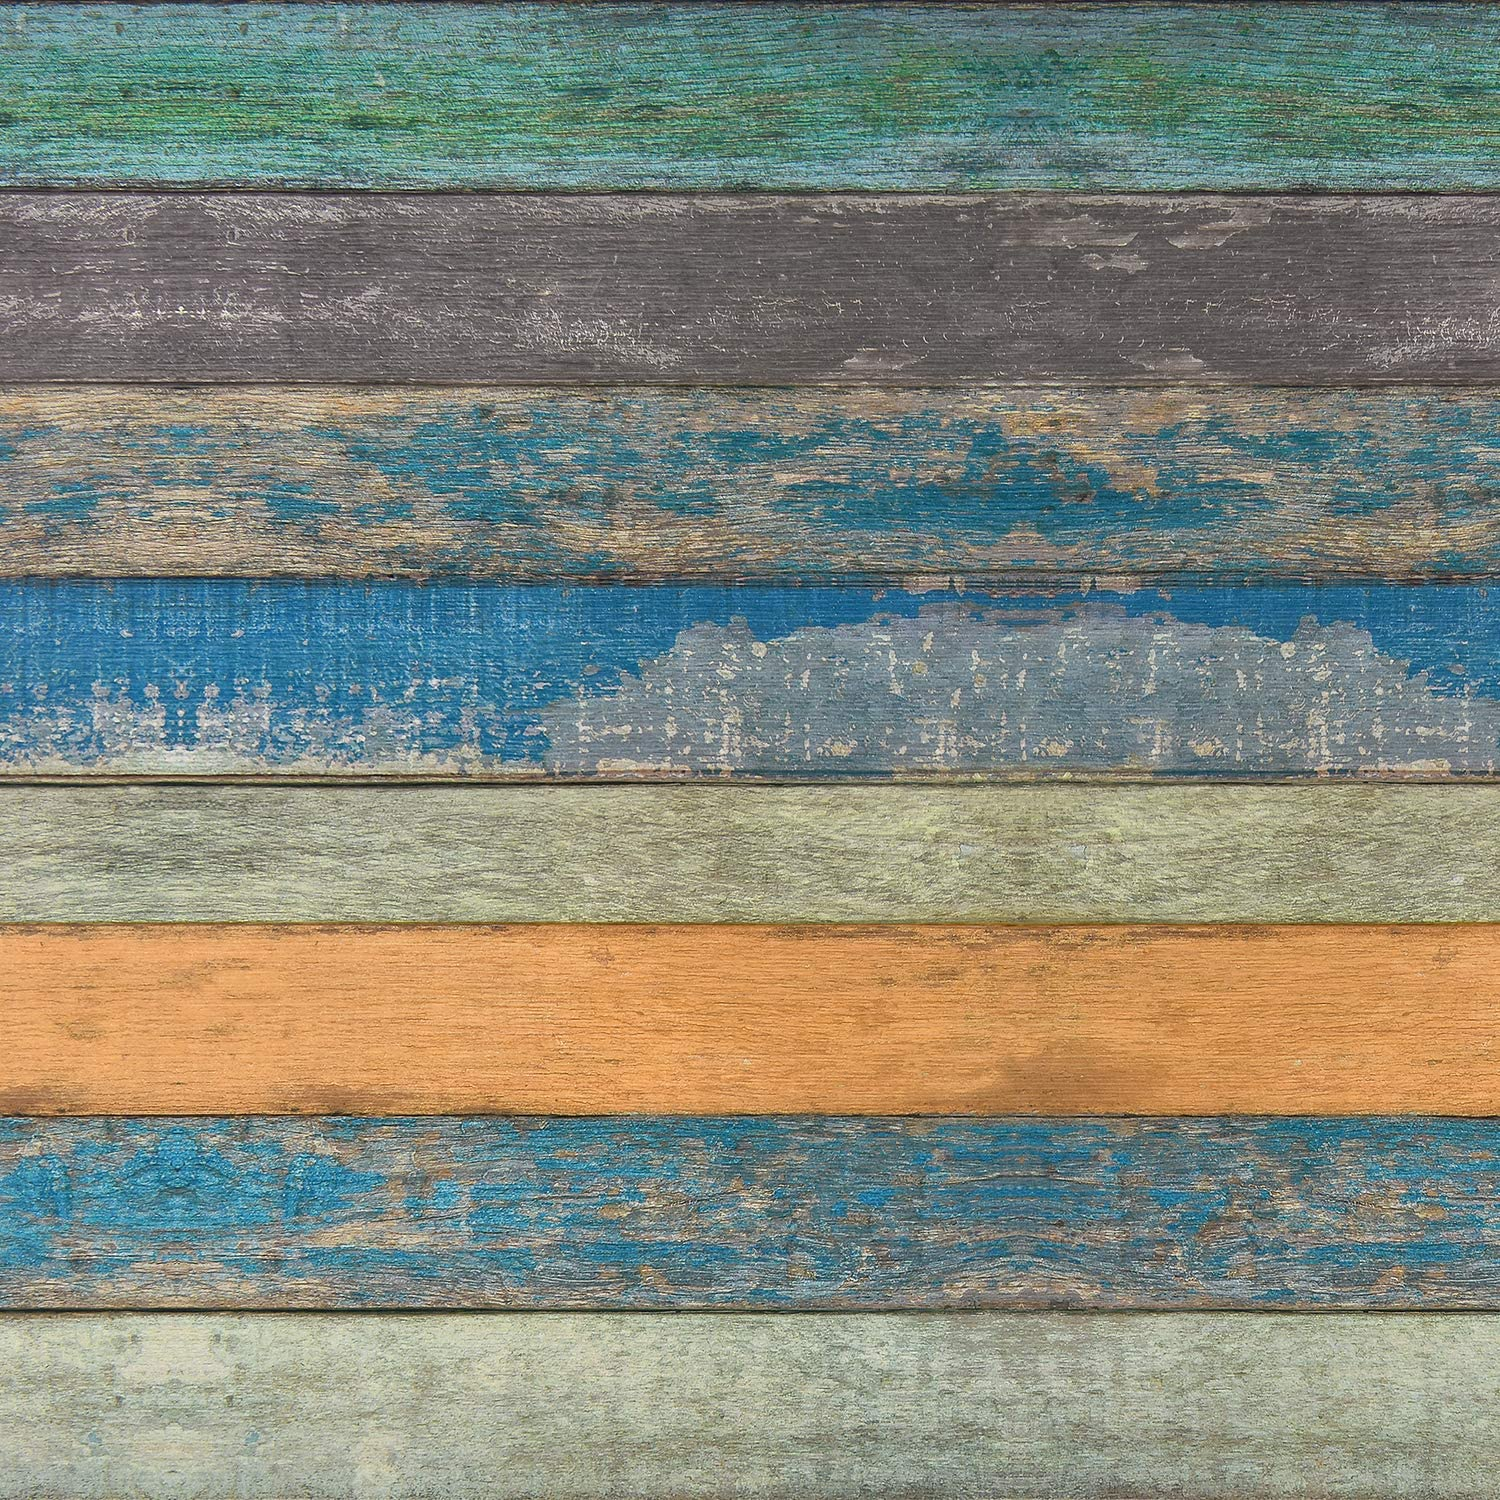 "17.71"" x 118"" Wood Plank Contact Paper Distressed Wood Textured Peel and Stick Wallpaper Blue Green Yellow Strips Self-Adhesive Contact Paper for Walls Shelves Drawers Furniture Room"